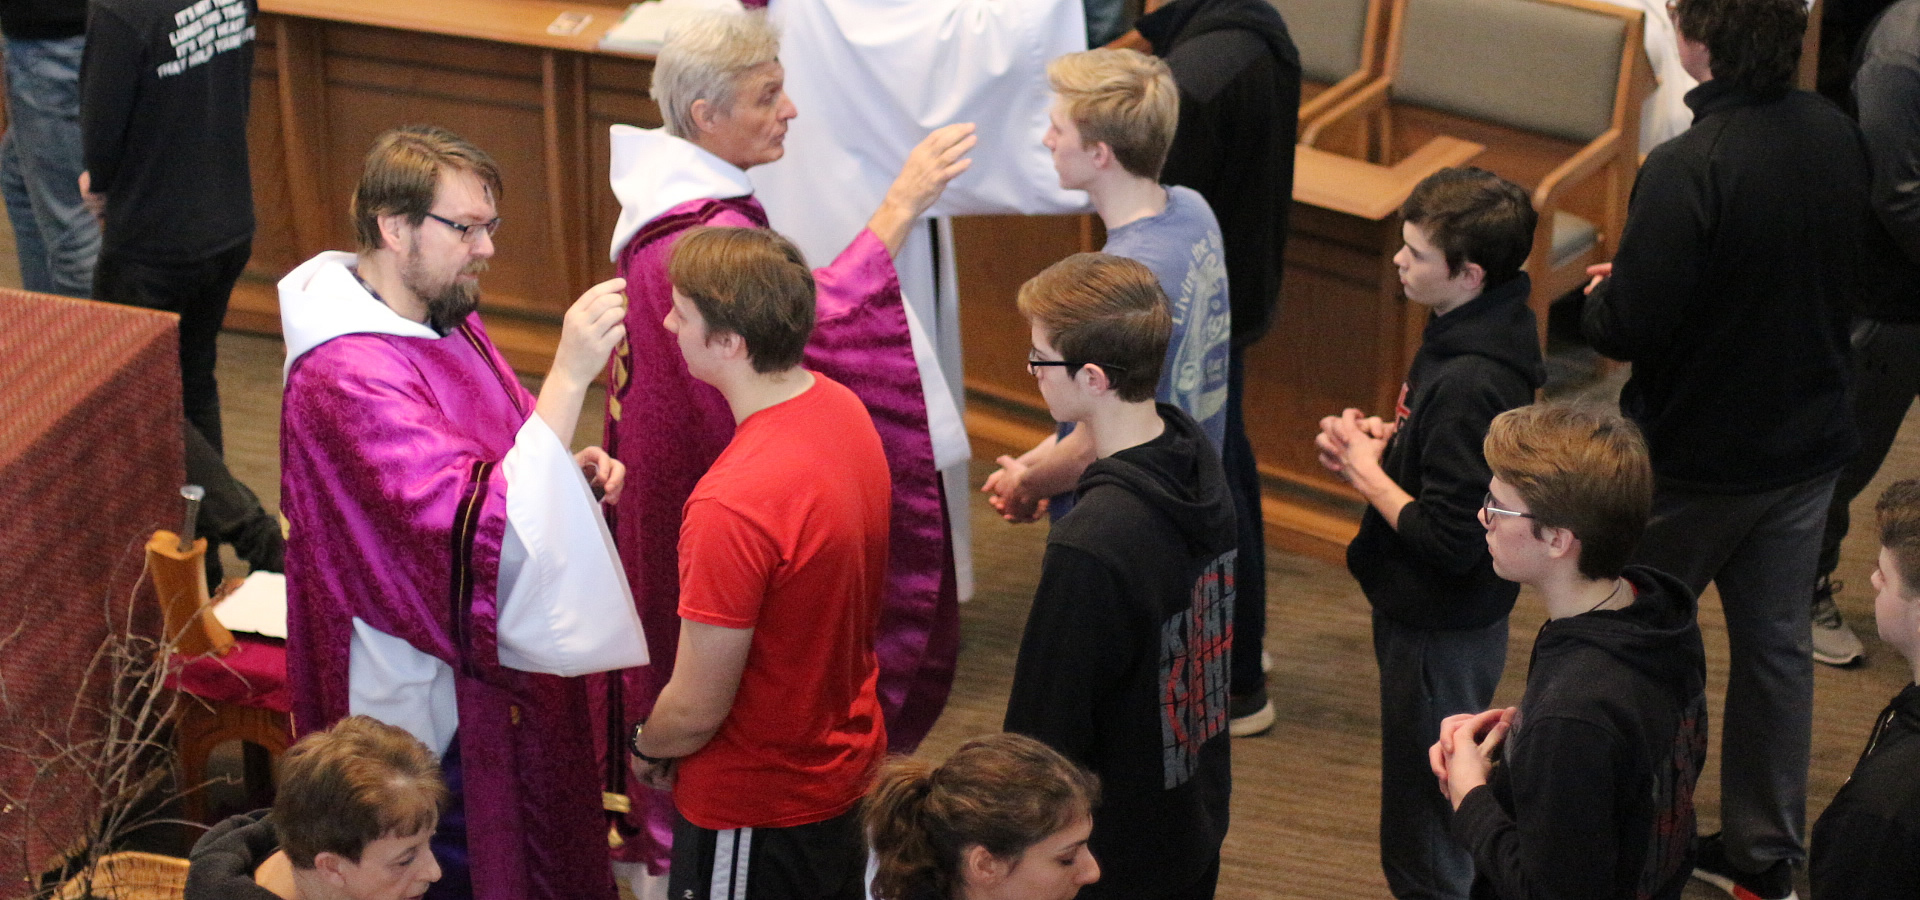 Students receiving Ashes on Ash Wednesday